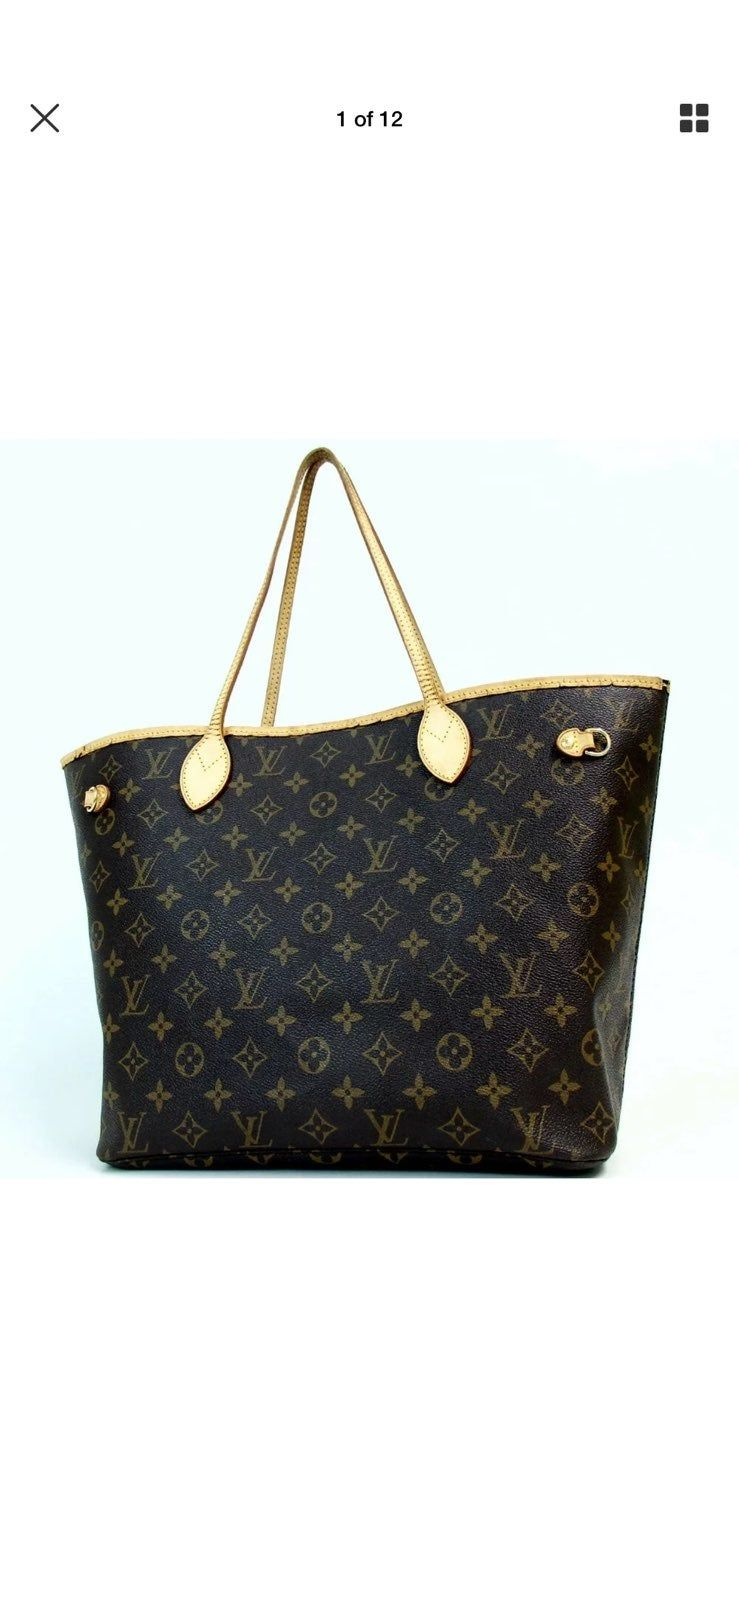 Authentic Louis Vuitton Monogram Neverful Mm Item Information Category Tote Bag Brand Louis Vuitton Size W4 Louis Vuitton Louis Vuitton Bag Neverfull Tote Bag